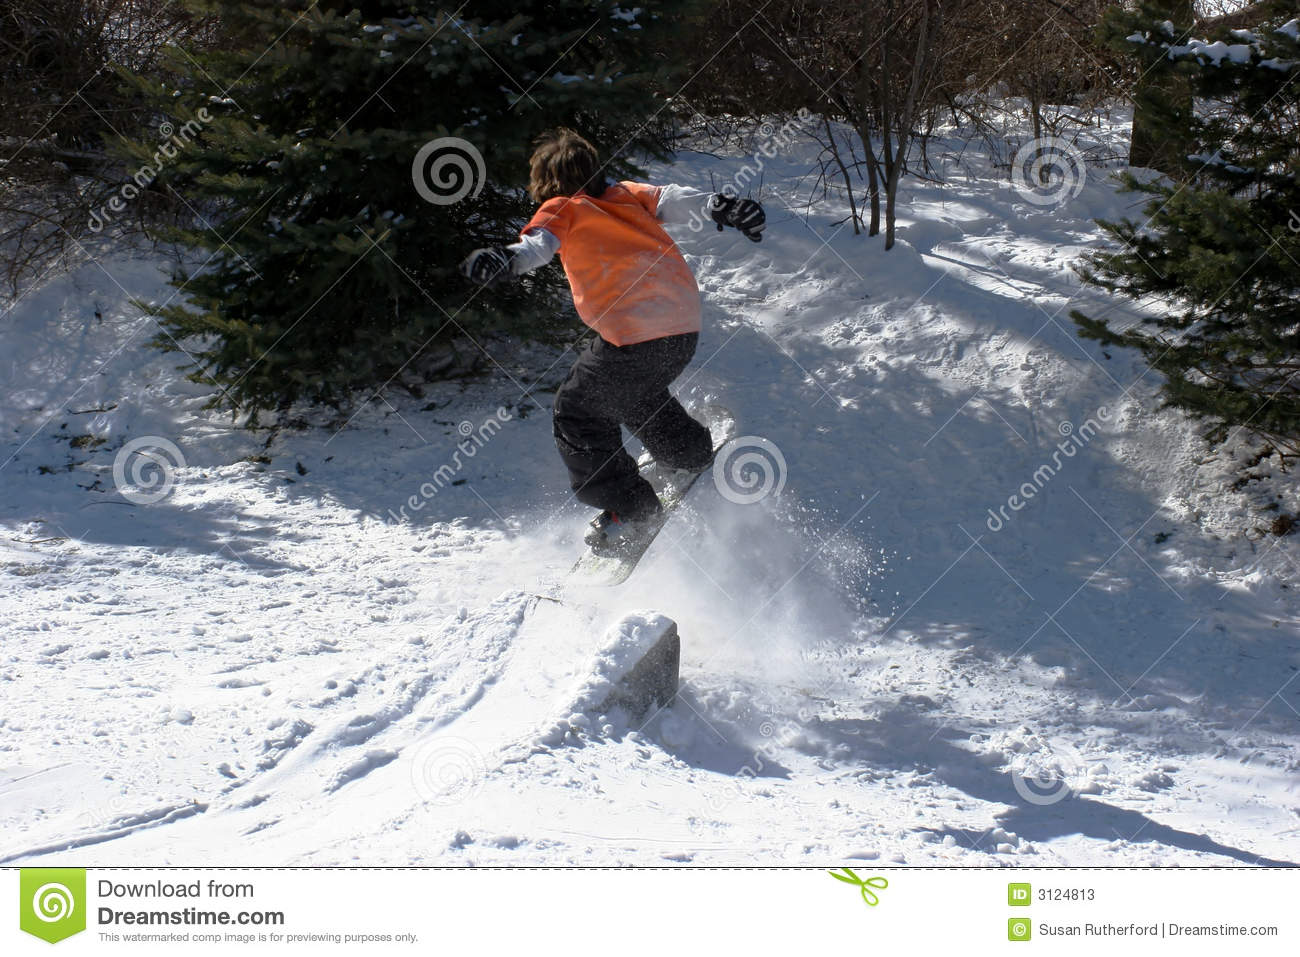 Backyard Snowboarding Stock Photos Image - Backyard snowboarding